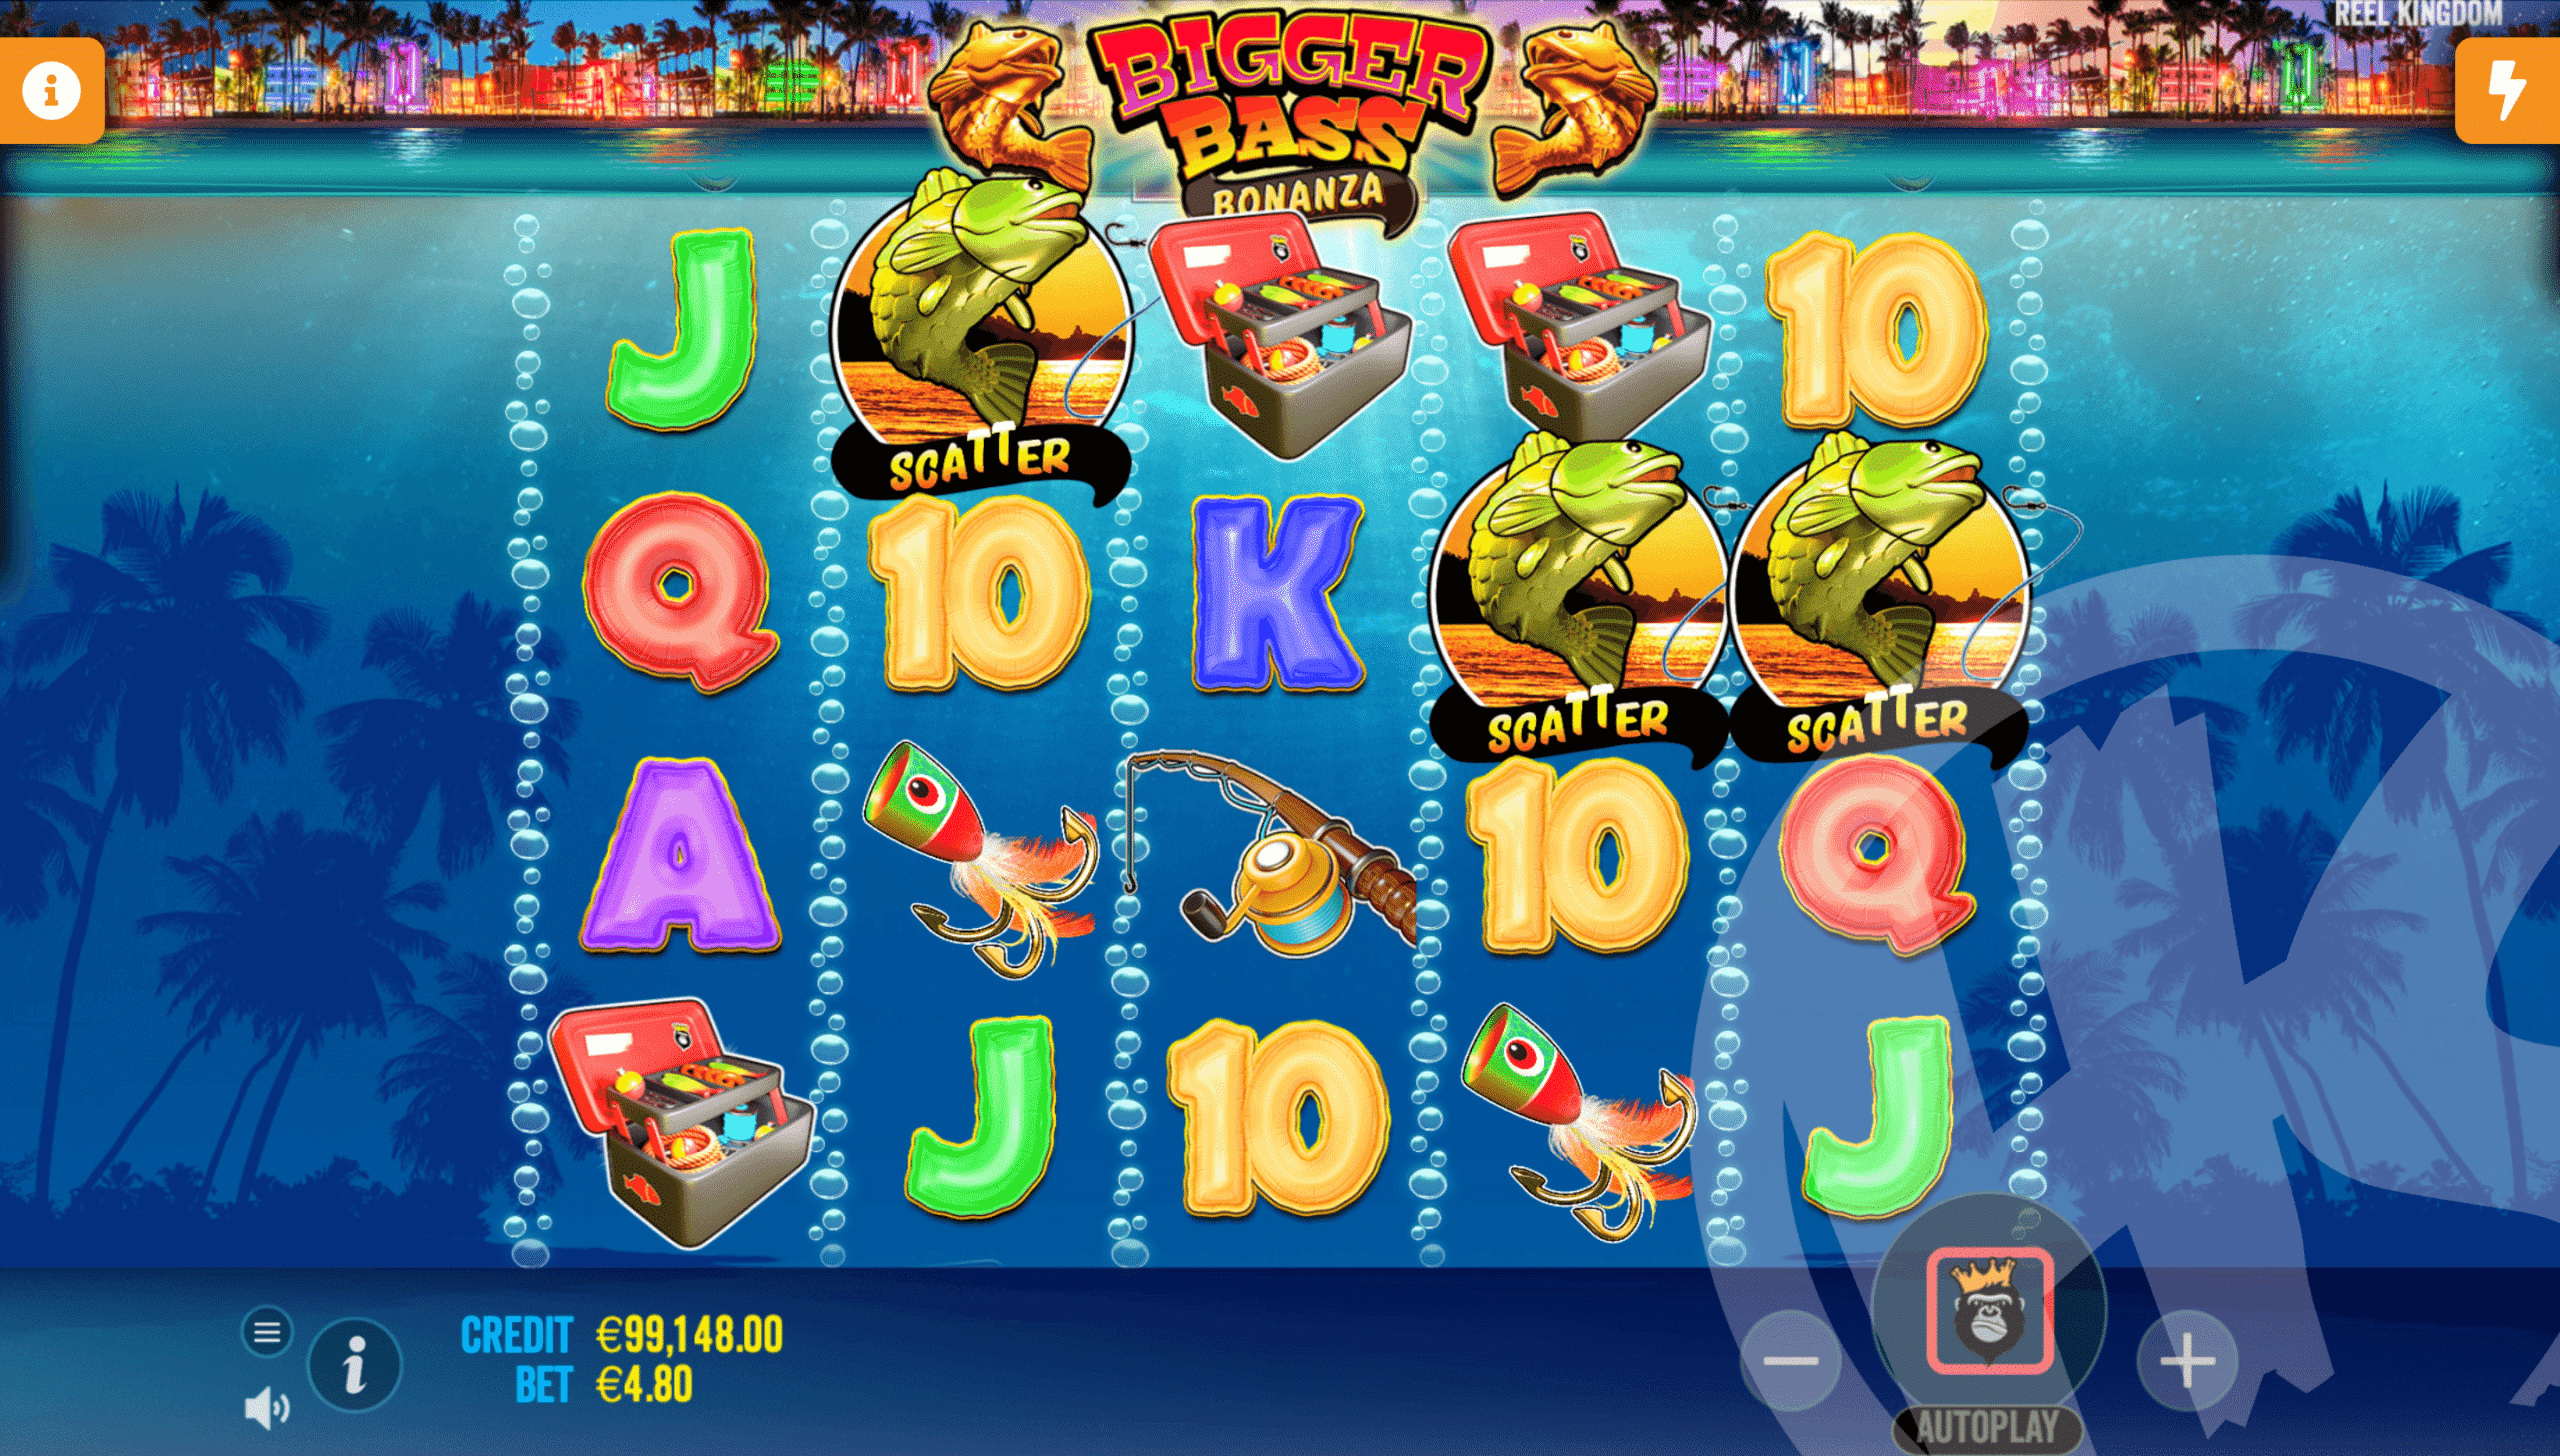 3 Scatters Triggers Free Spins